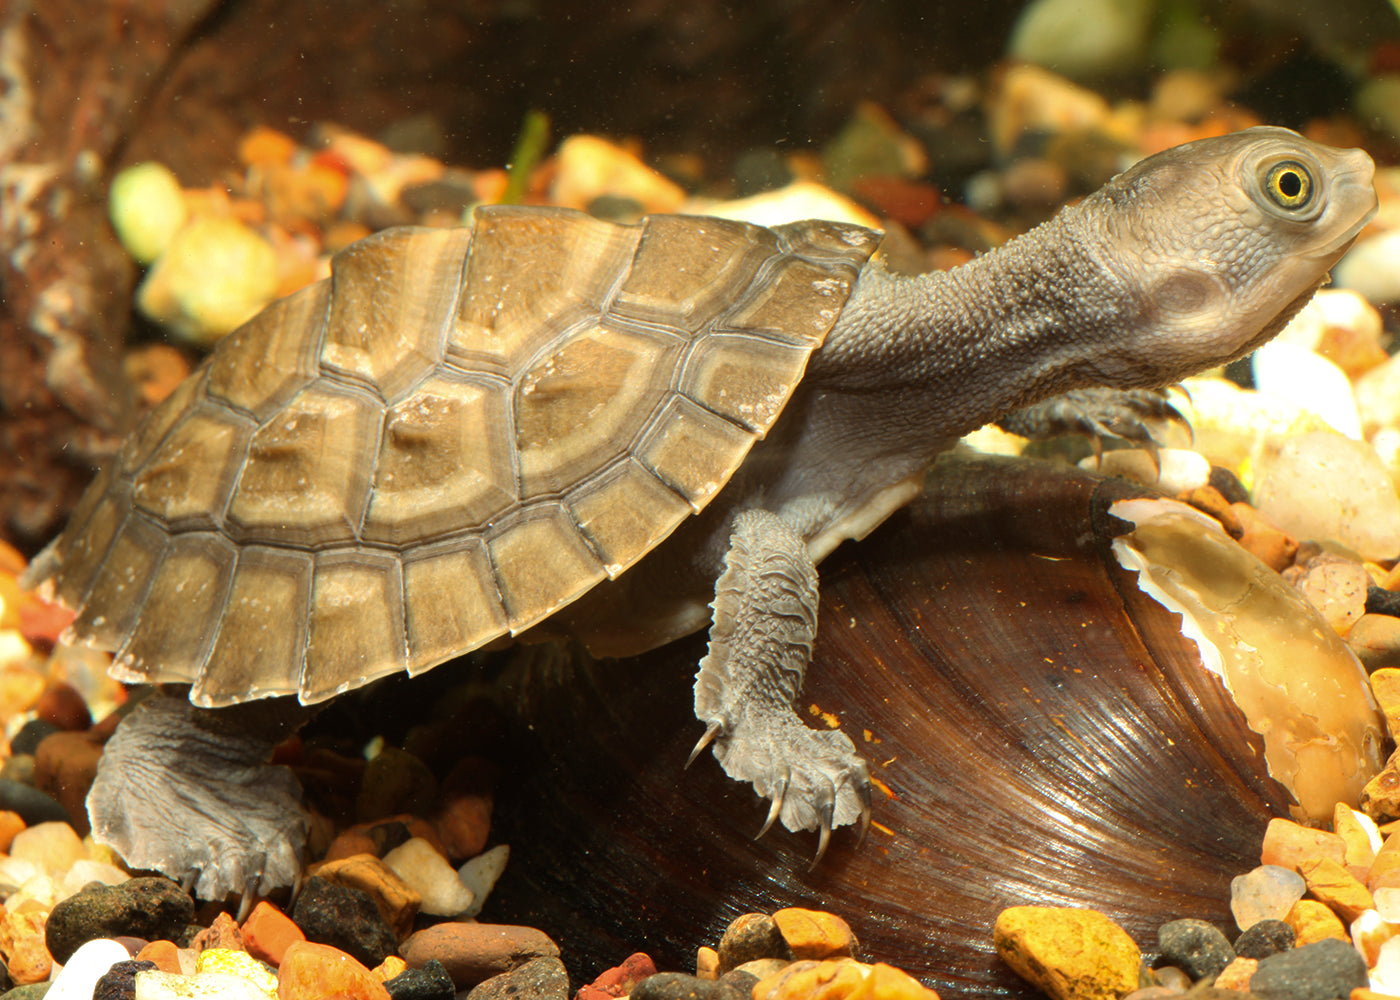 Macleay River Short Neck Turtle (Hatchling)